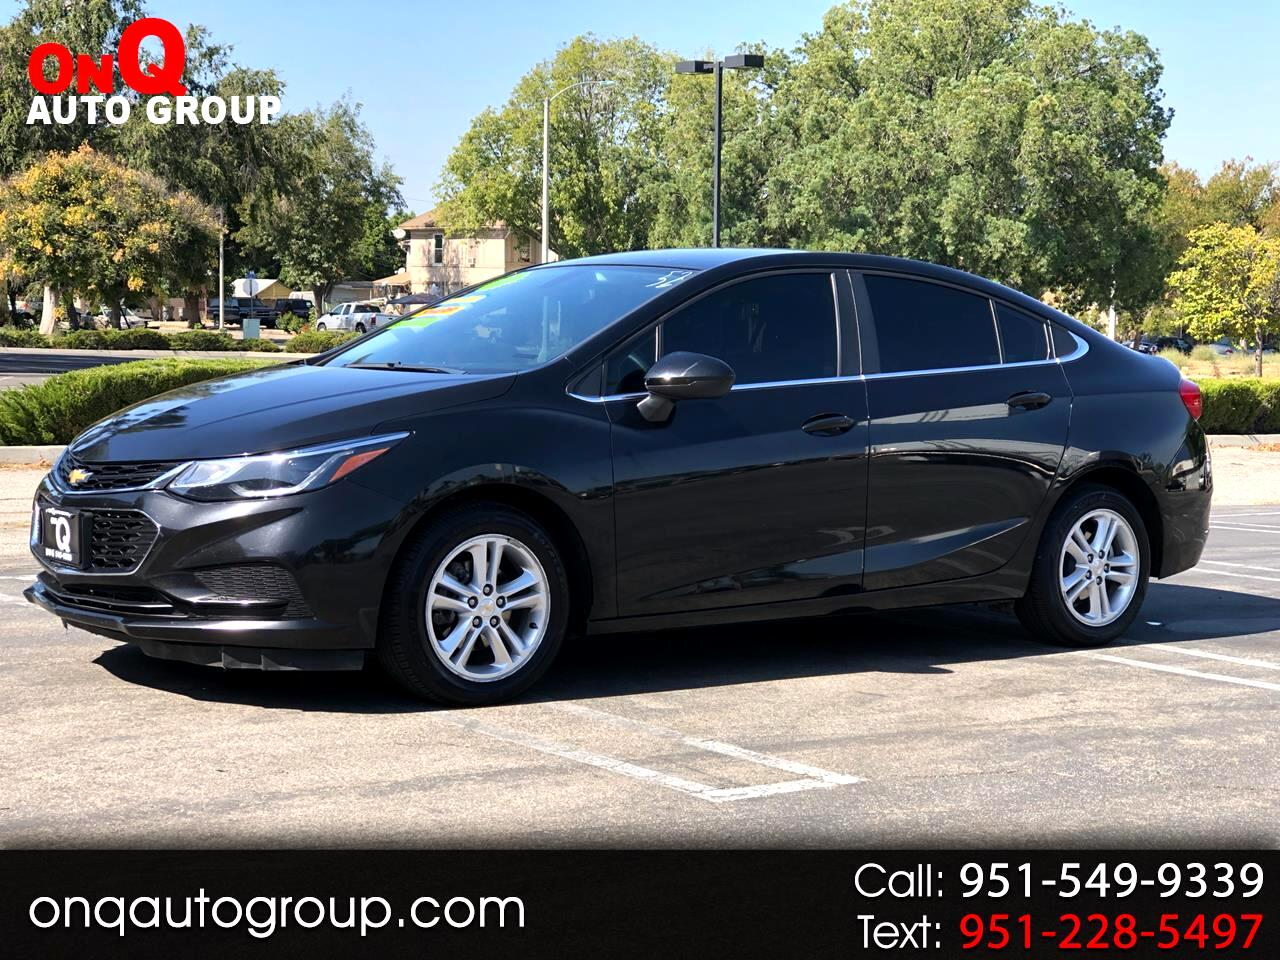 2018 Chevrolet Cruze 4dr Sdn 1.4L LT w/1SD